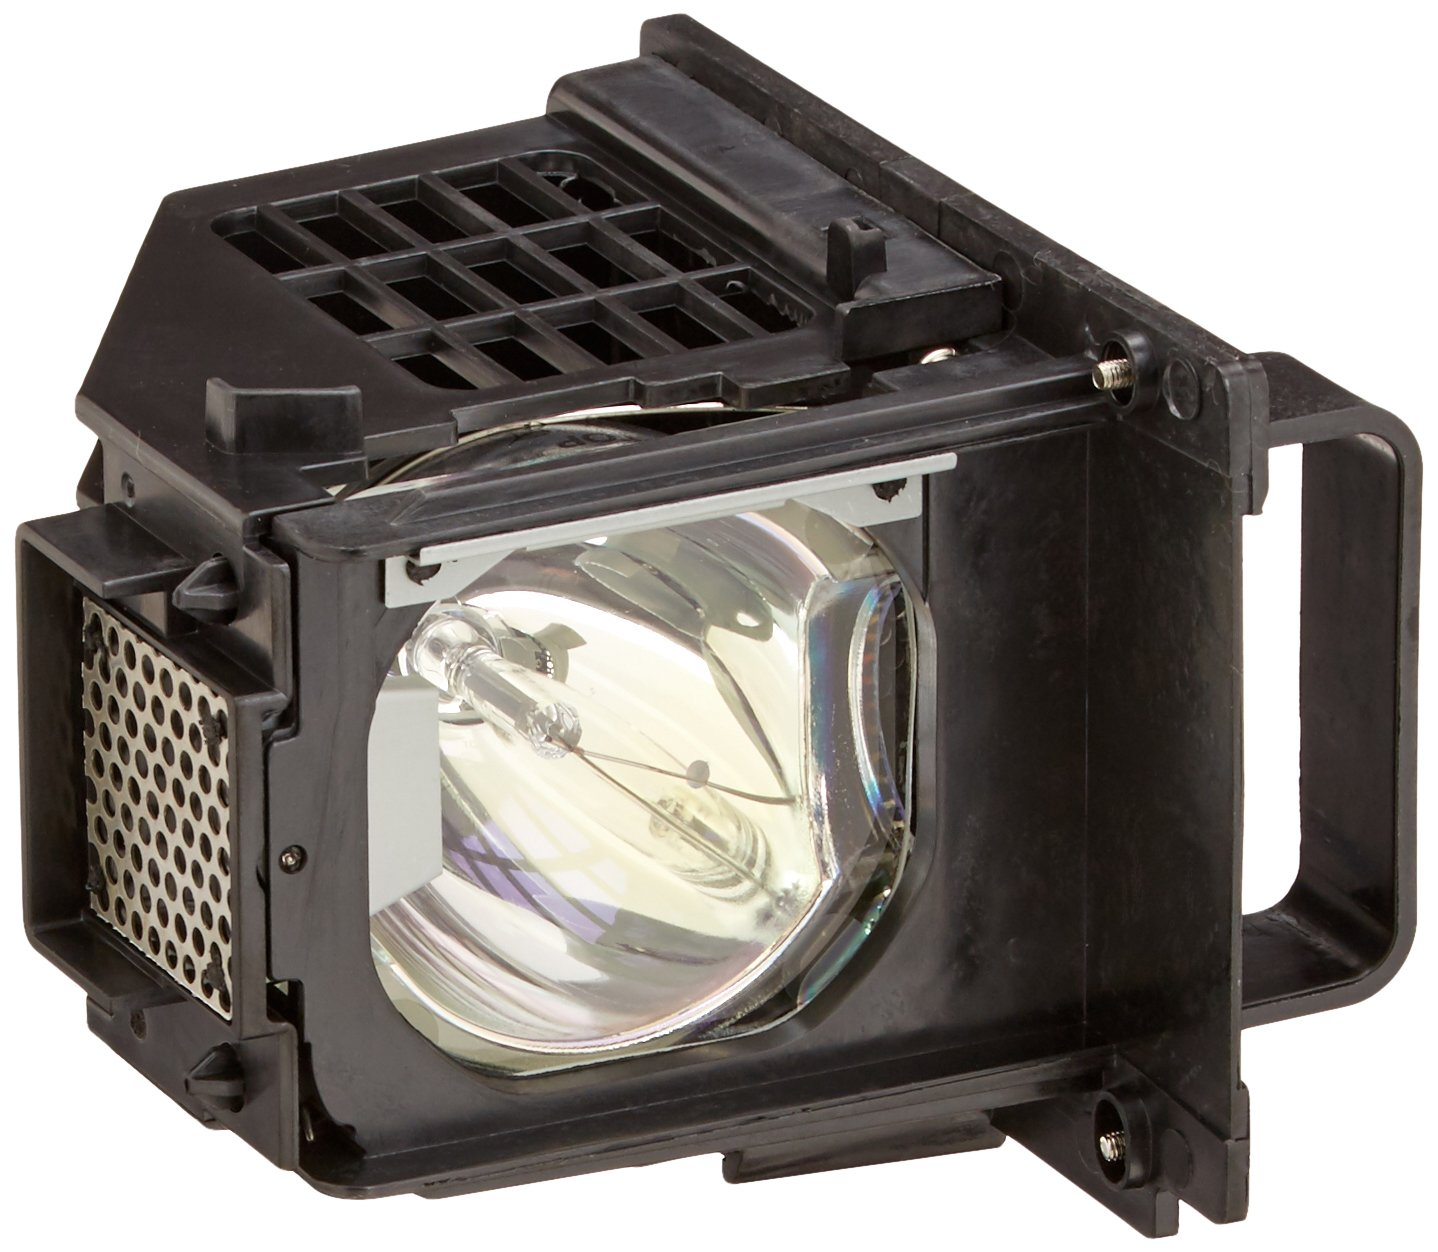 vlt home for replacement wd tv lamp wealth parts from interior mitsubishi projector unparalleled